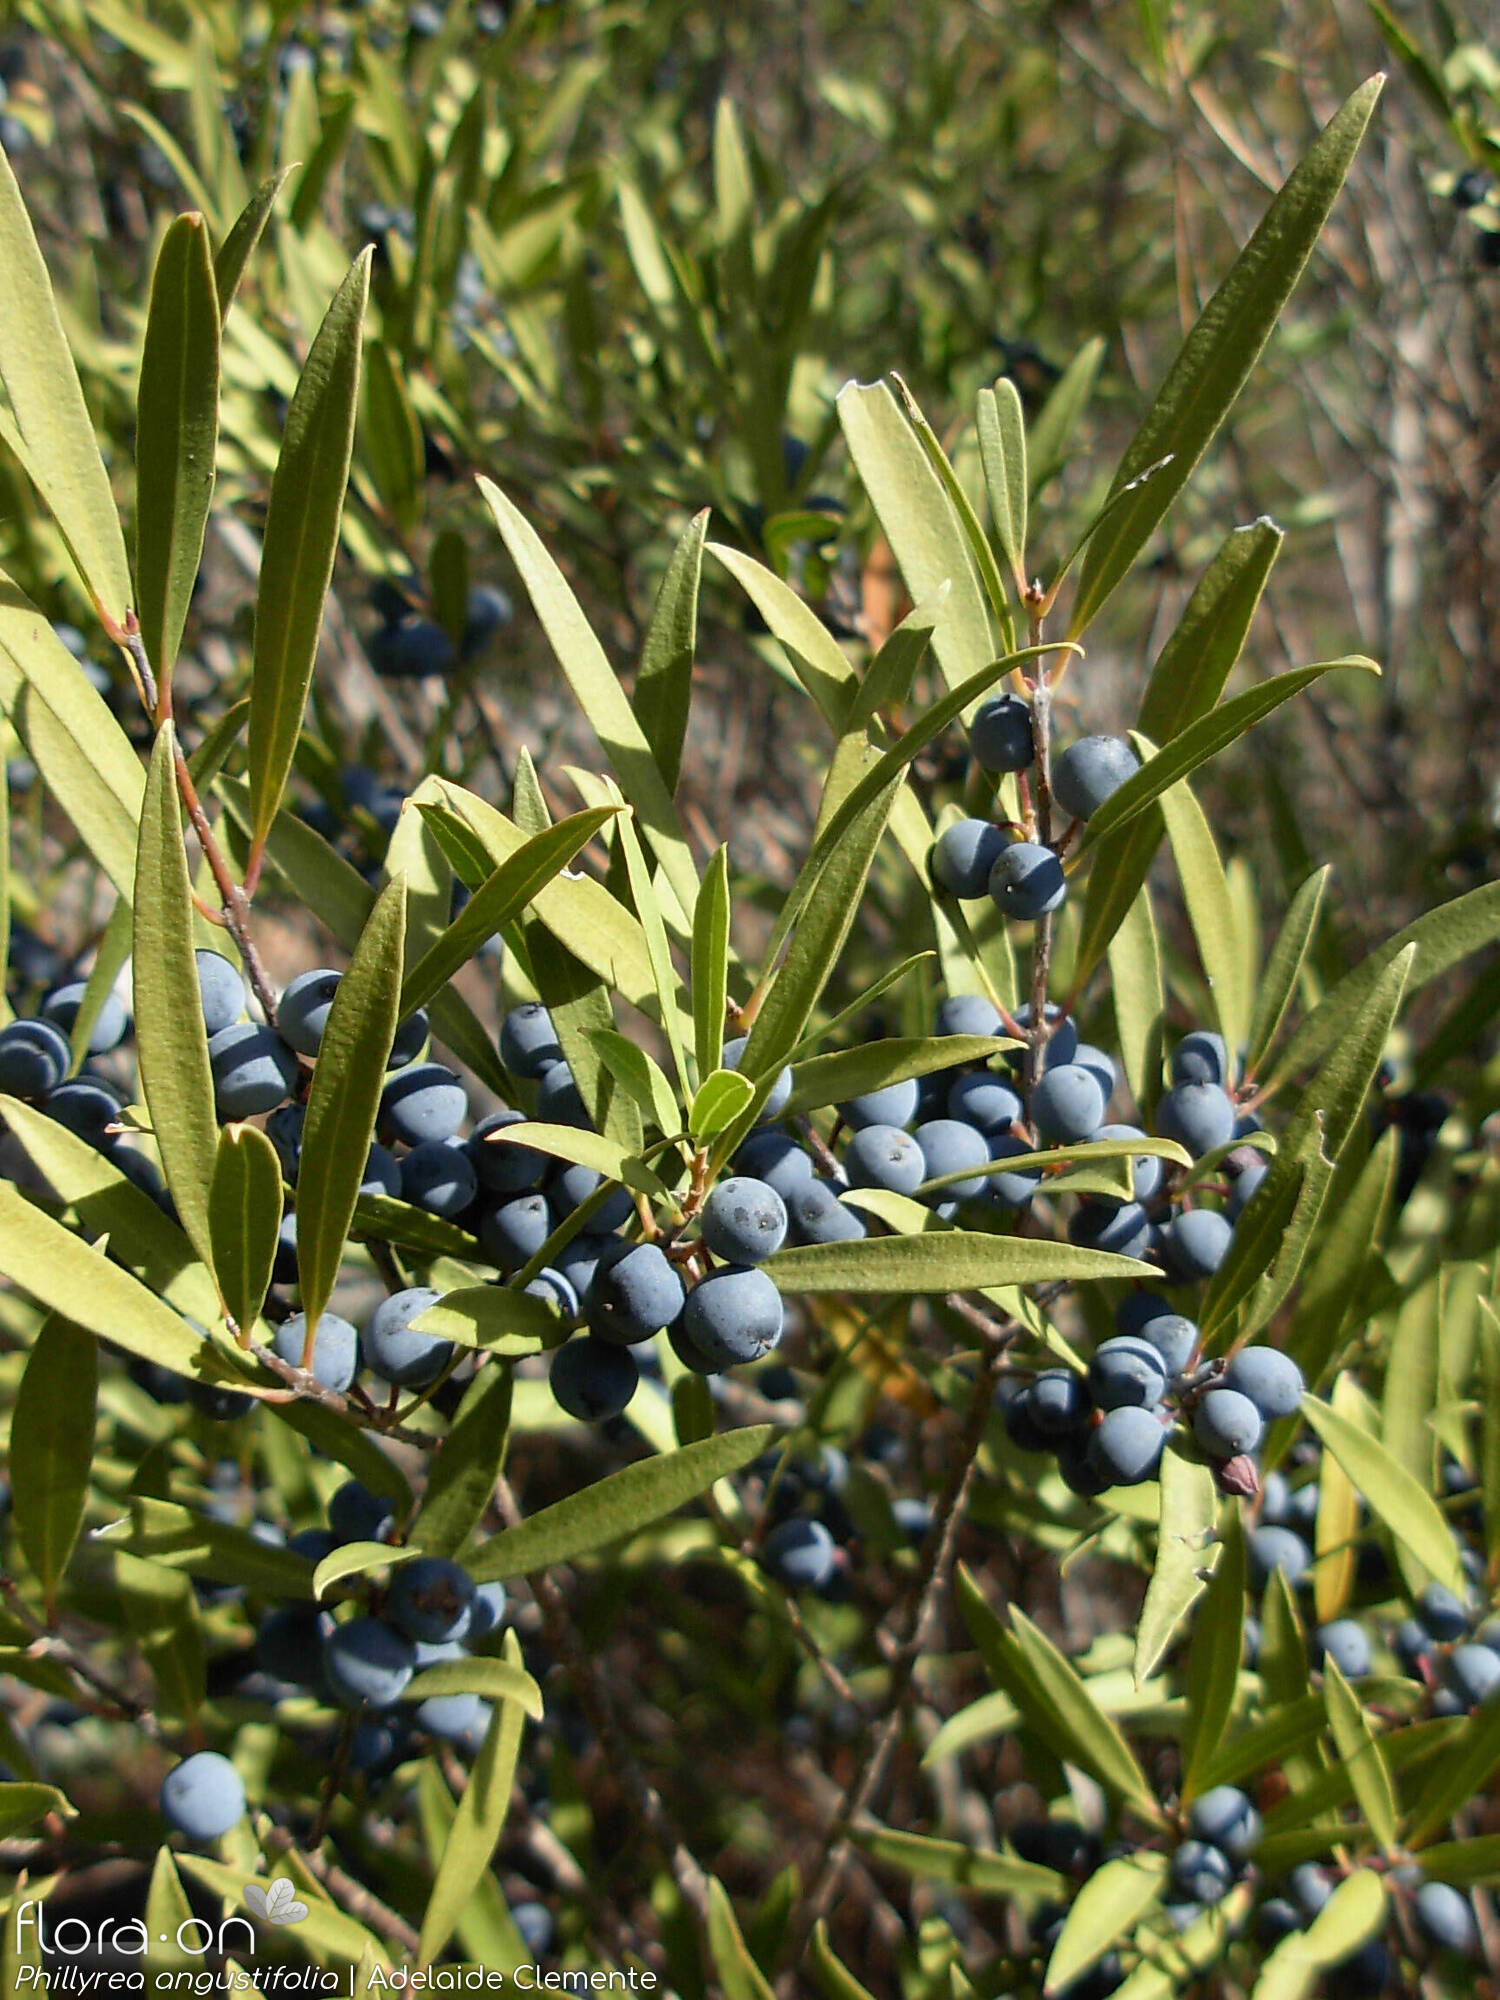 Phillyrea angustifolia - Fruto | Adelaide Clemente; CC BY-NC 4.0